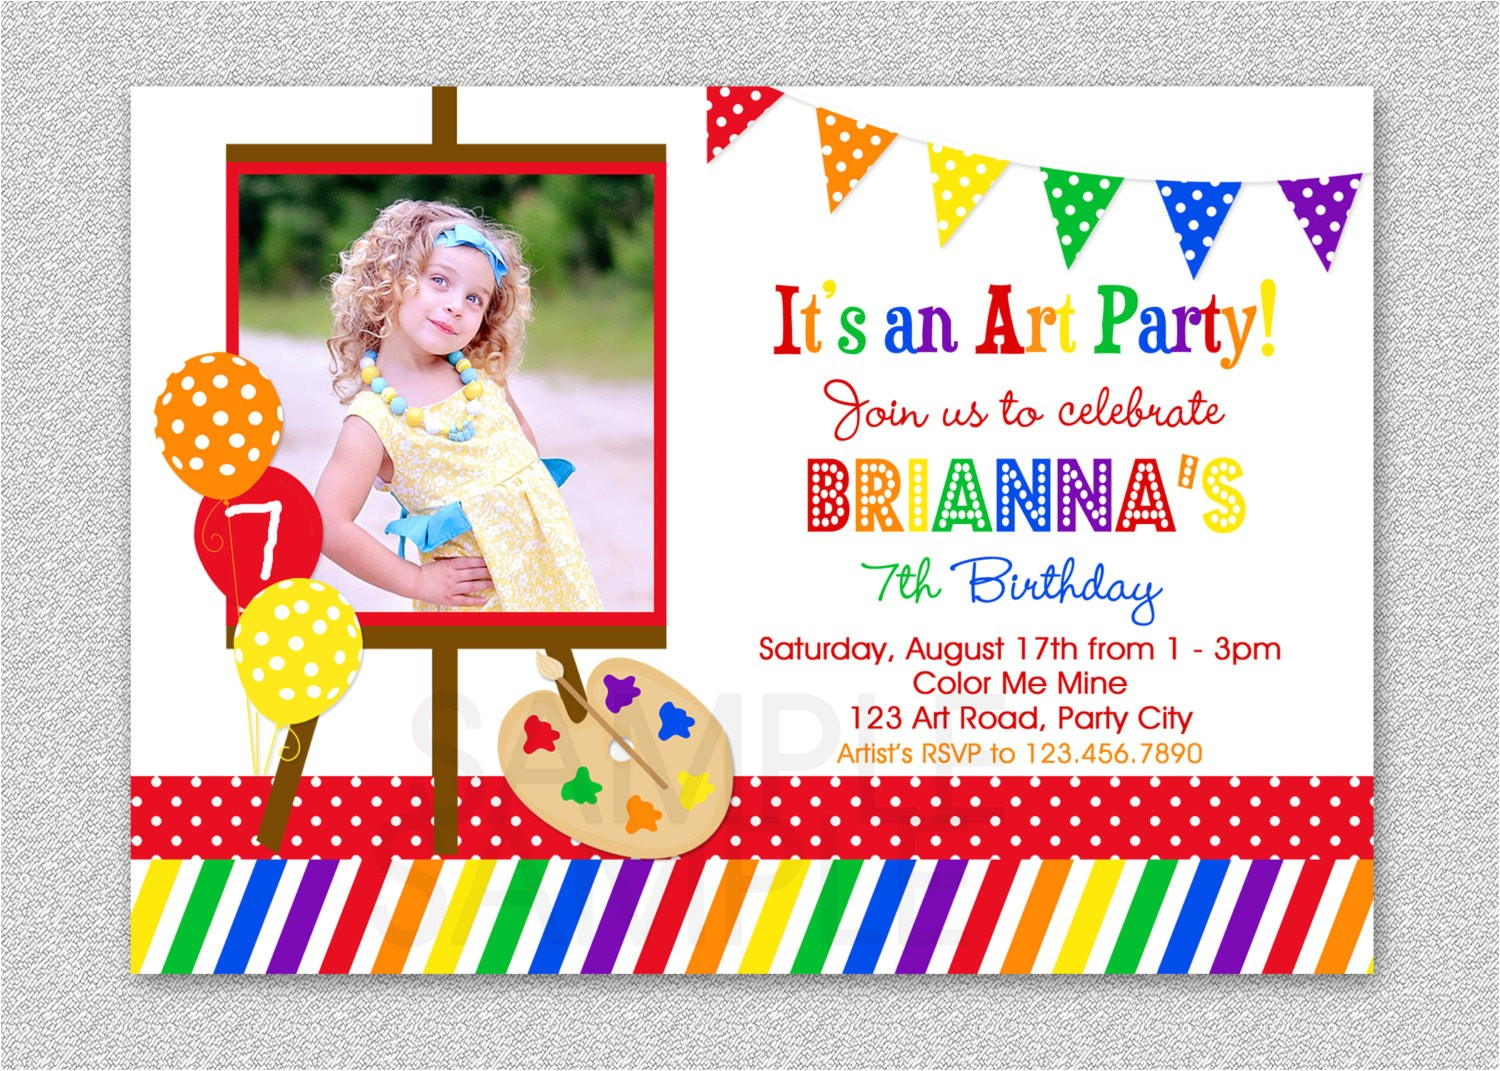 how to make art party invitations free the art themed birthday party invitations art birthday party theme silverlininginvitations